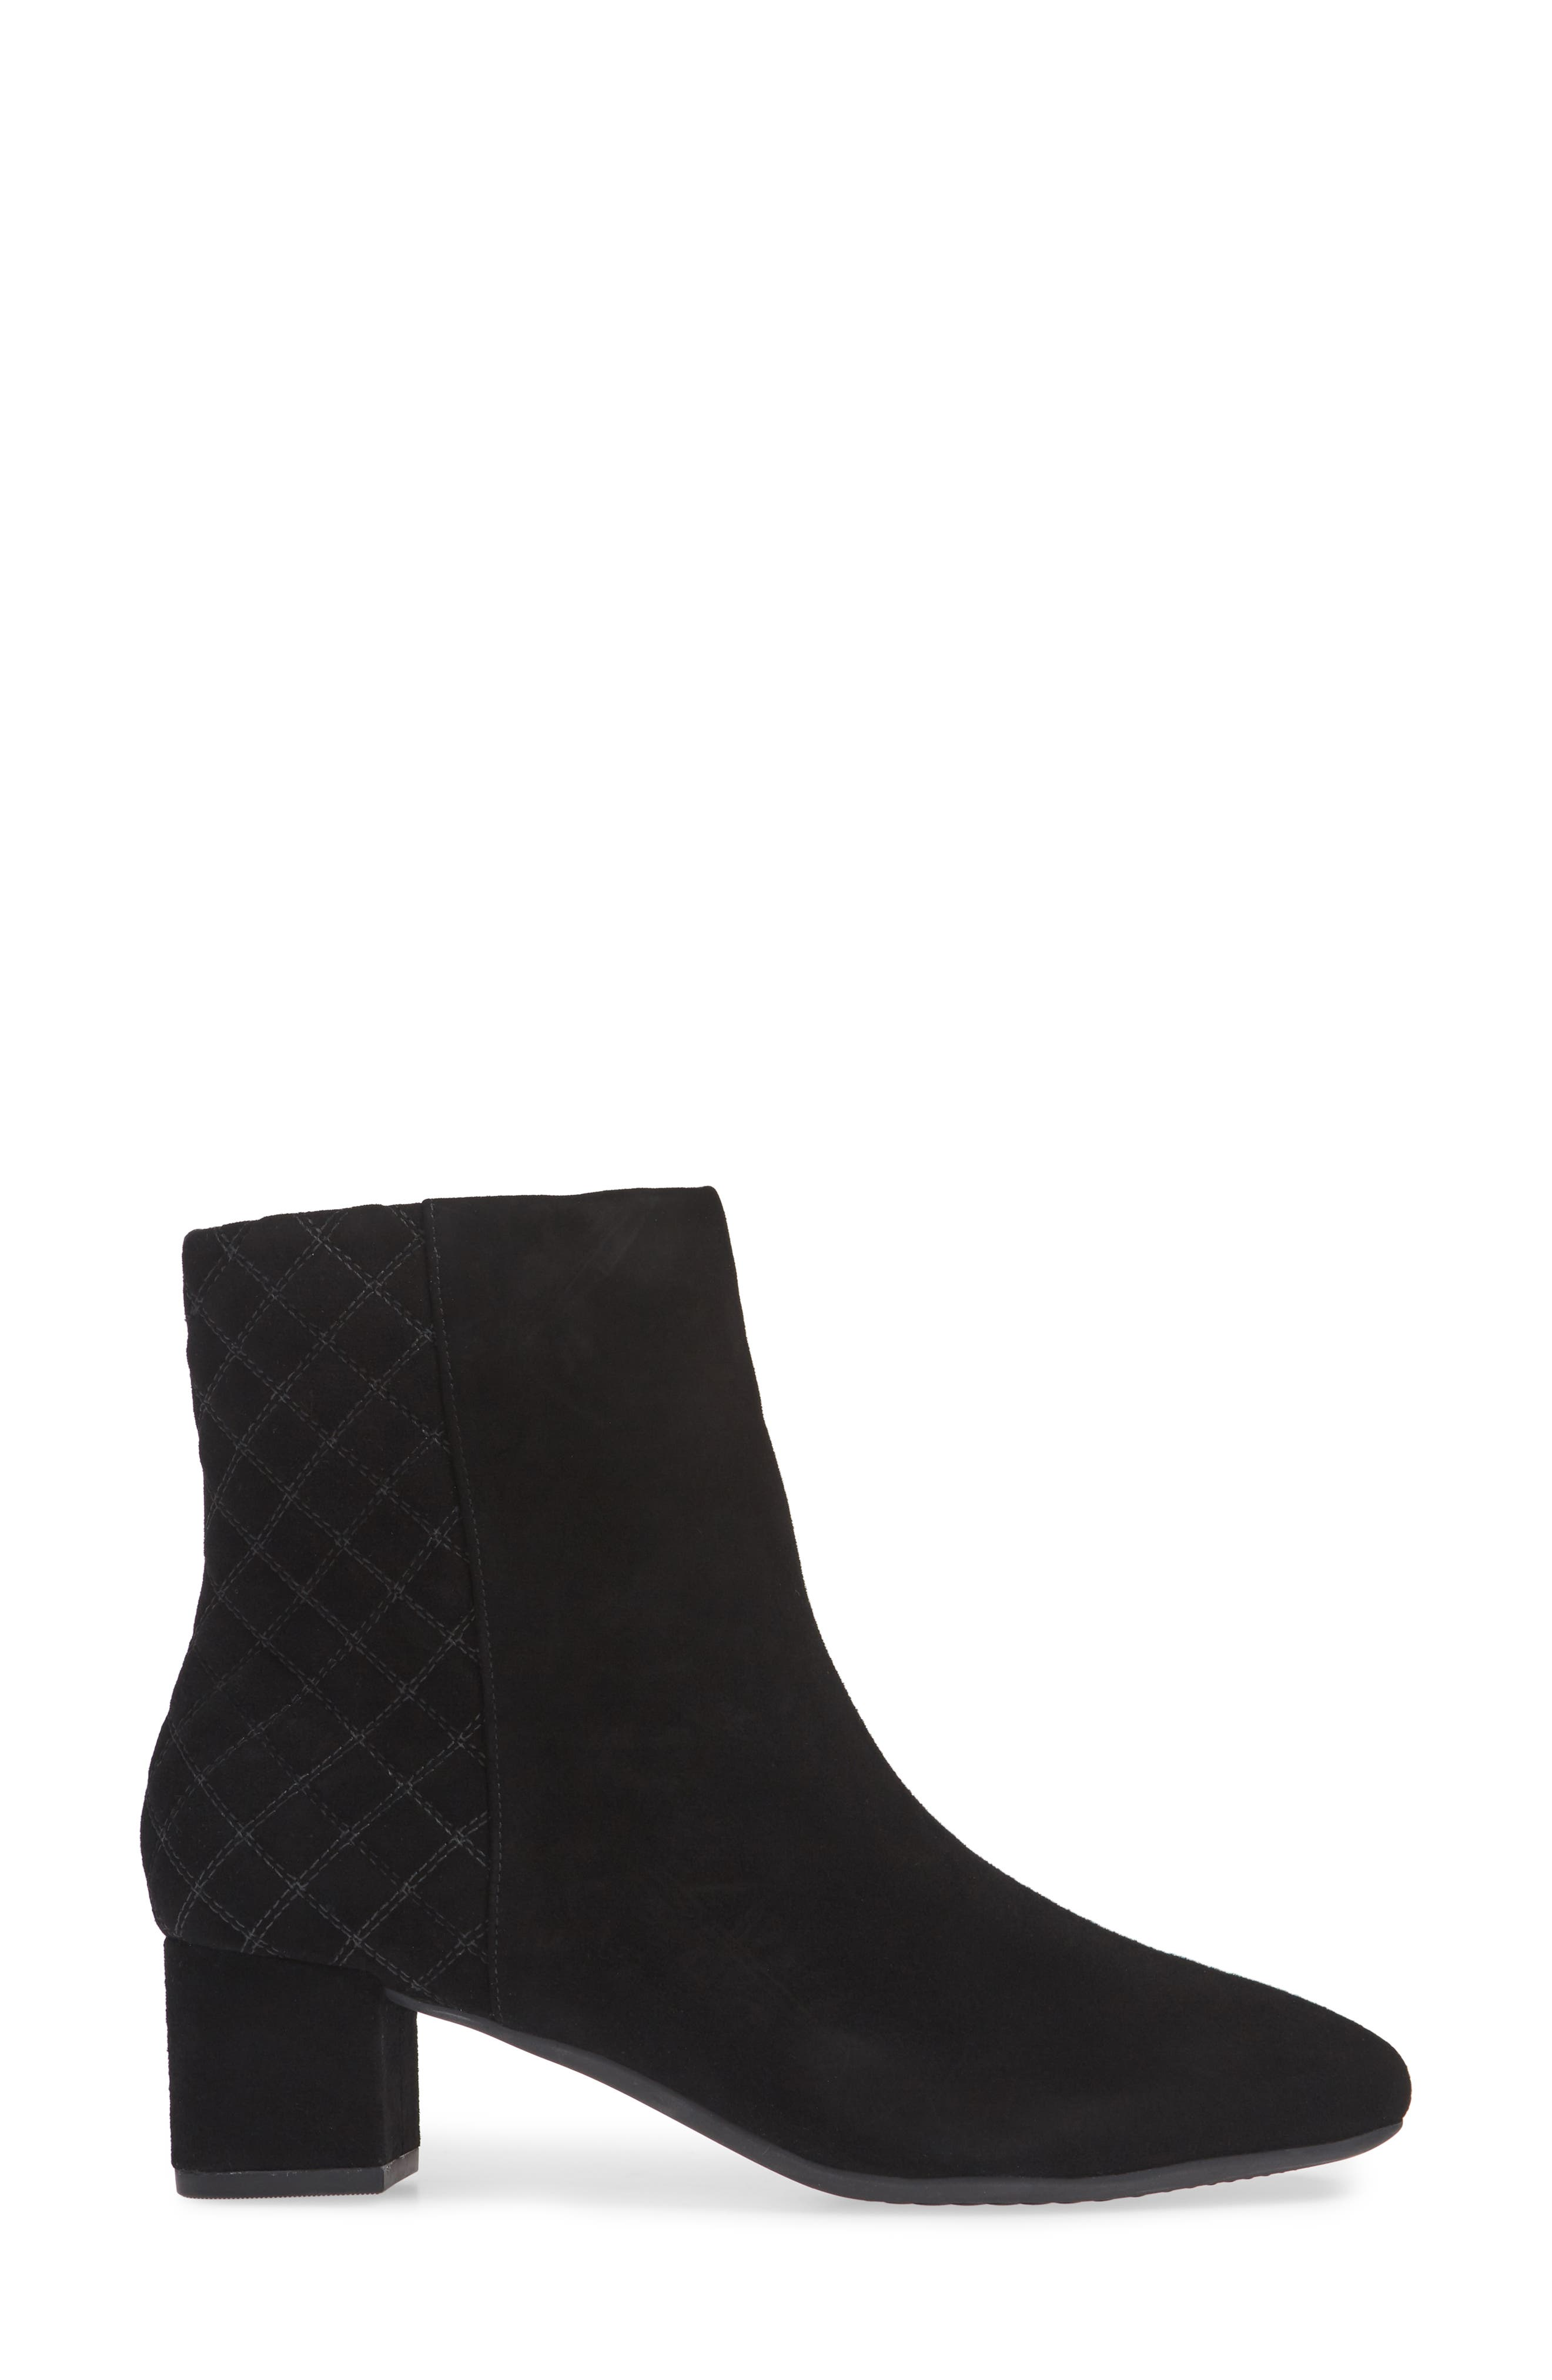 Tealia Luck Bootie,                             Alternate thumbnail 3, color,                             BLACK SUEDE